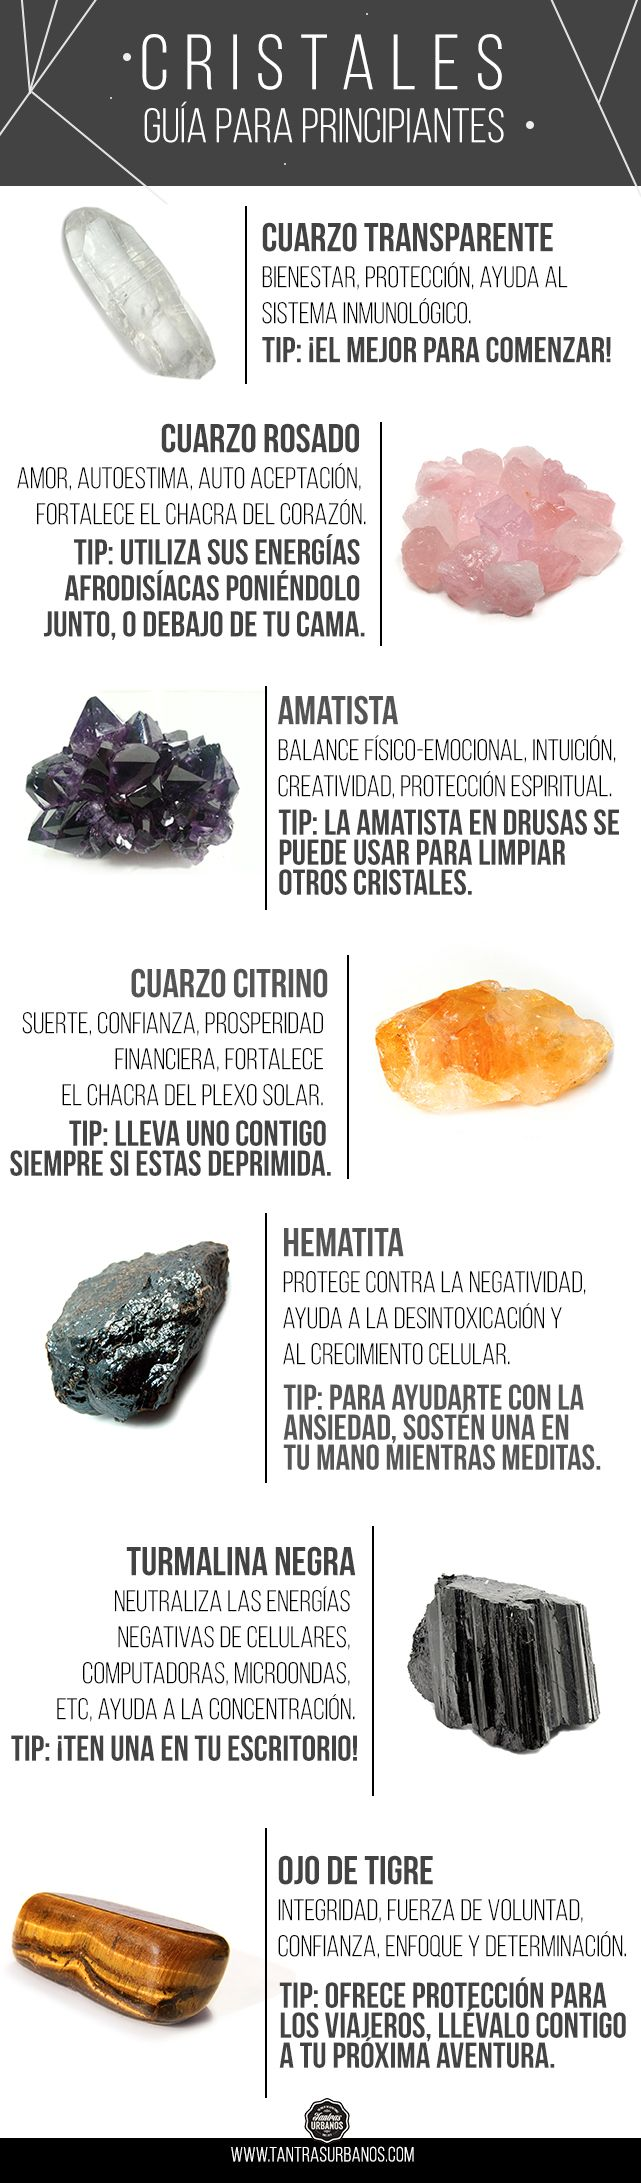 Pure Reiki Healing - infografia cristales (1) - Amazing Secret Discovered by Middle-Aged Construction Worker Releases Healing Energy Through The Palm of His Hands... Cures Diseases and Ailments Just By Touching Them... And Even Heals People Over Vast Distances...